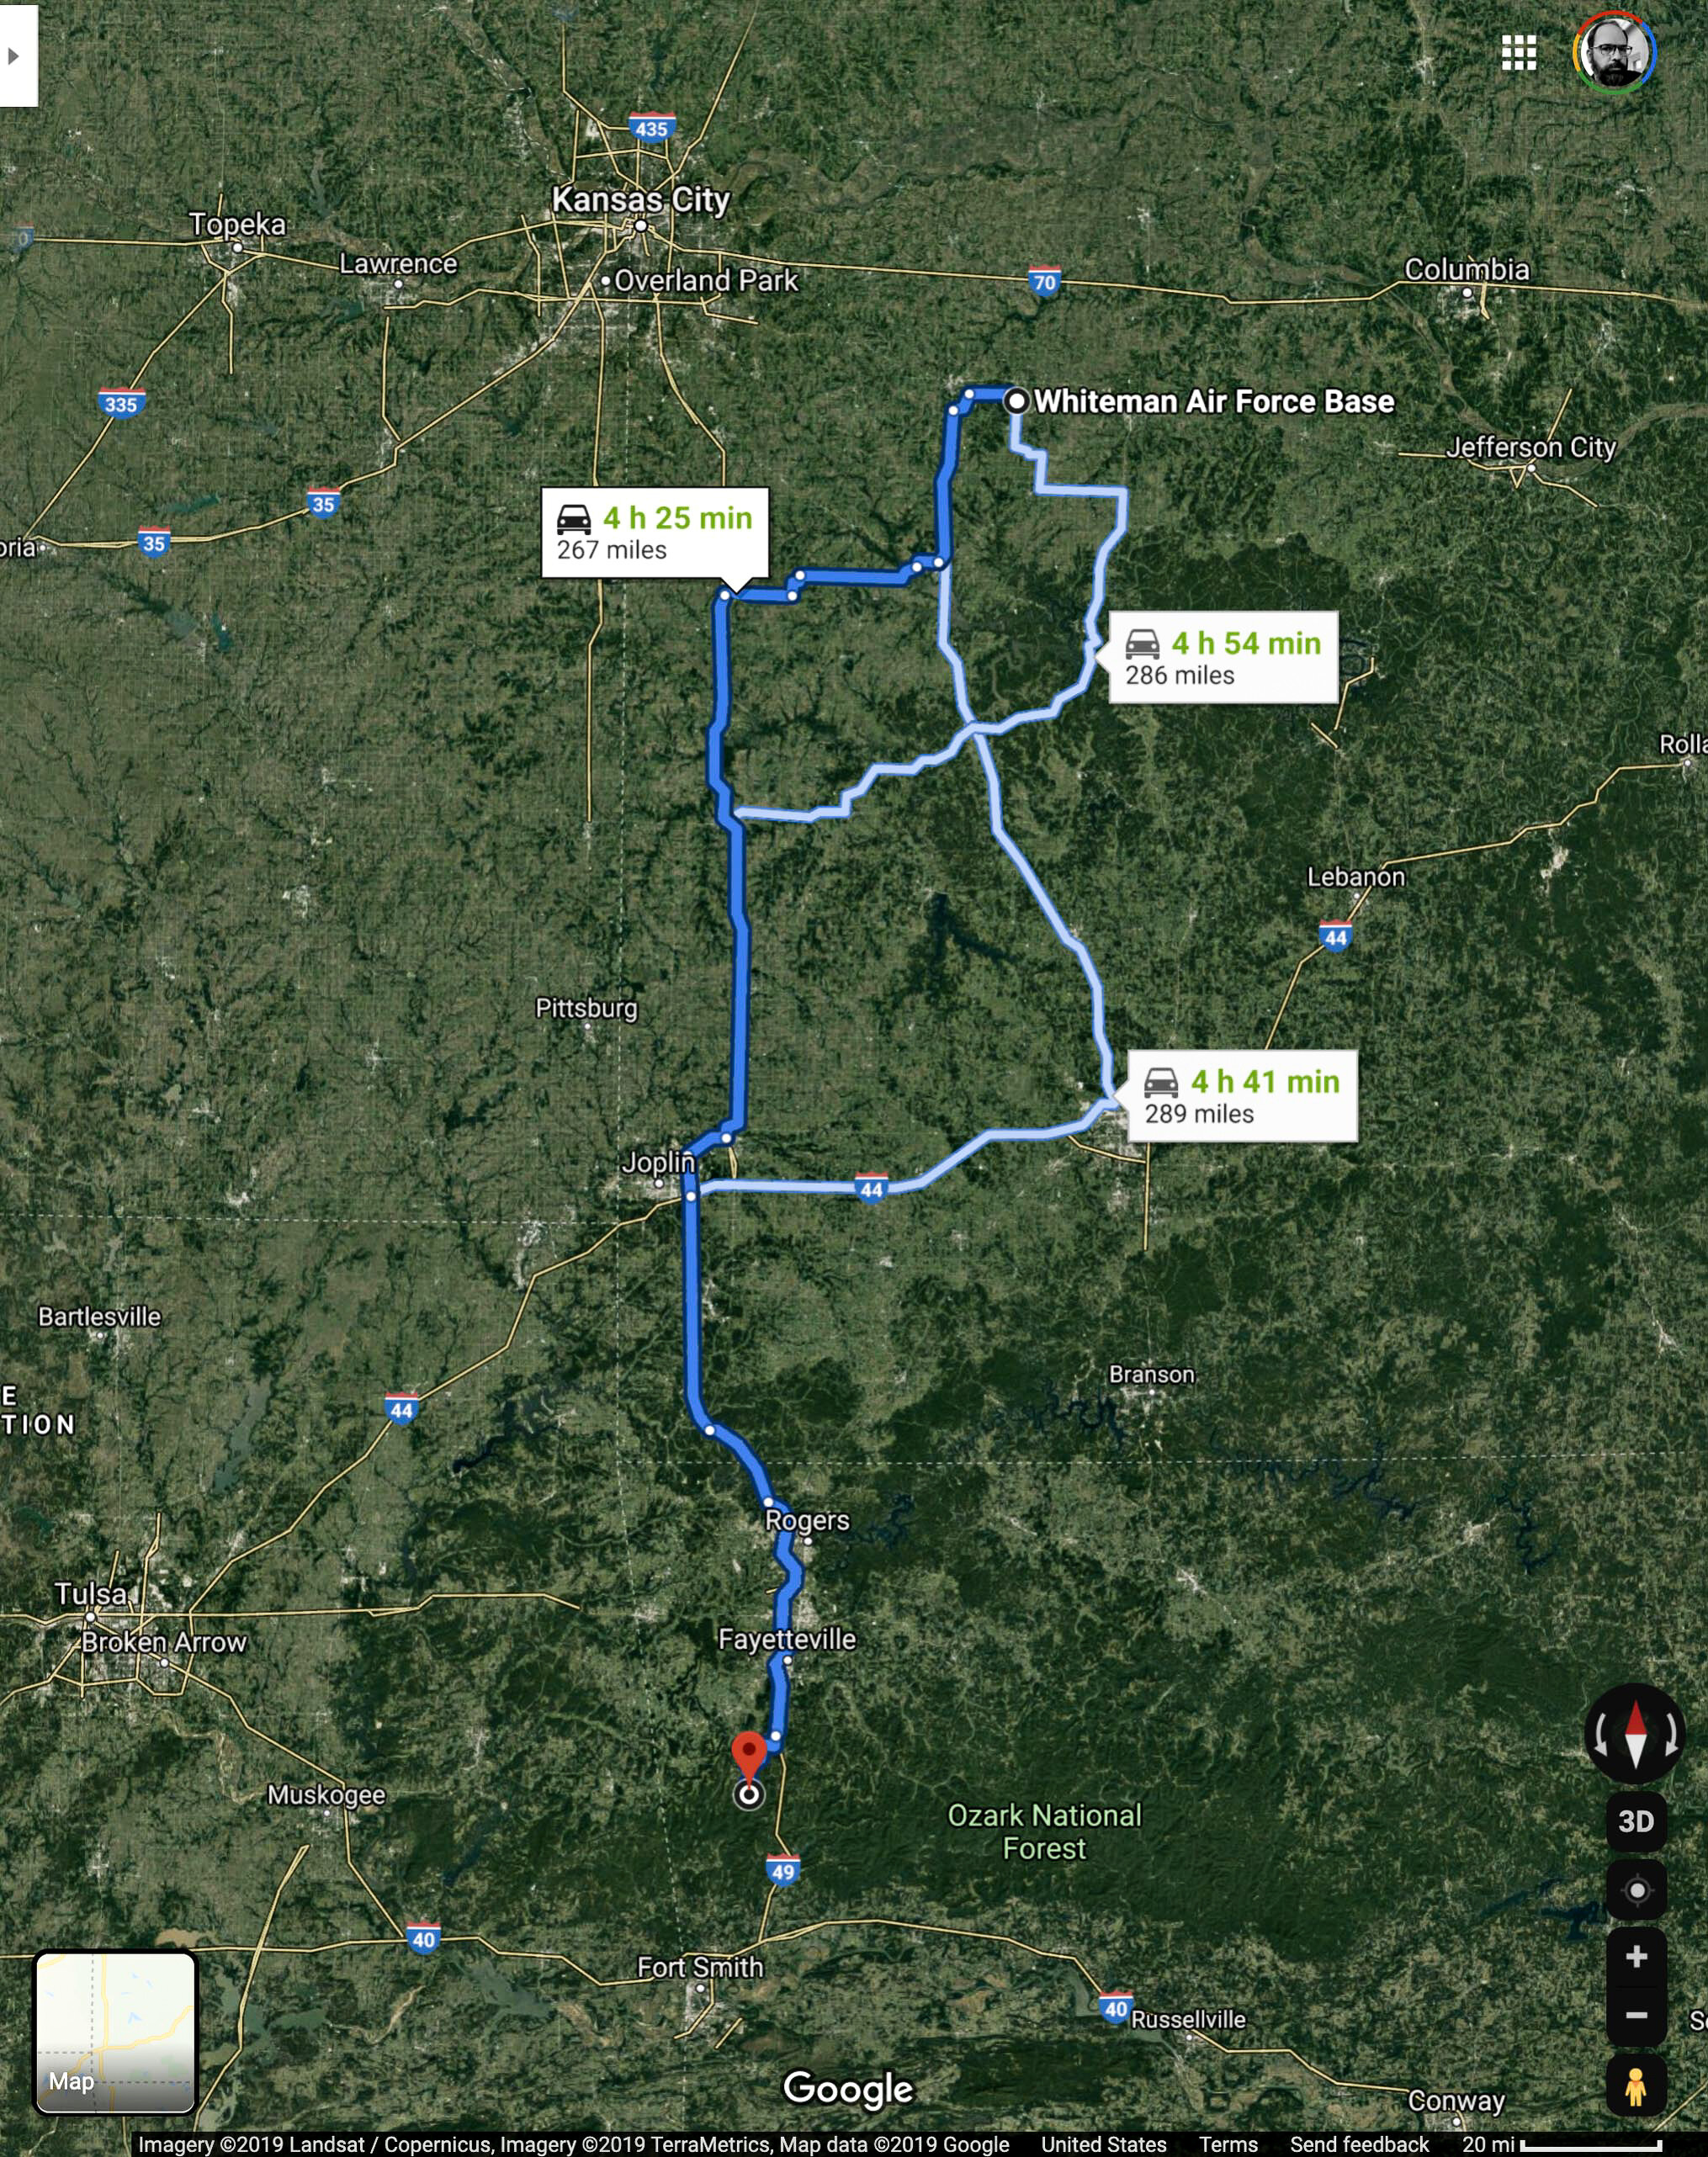 Driving distance from Whiteman AFB in Missouri to the clearing at Devil's Den in Arkansas.